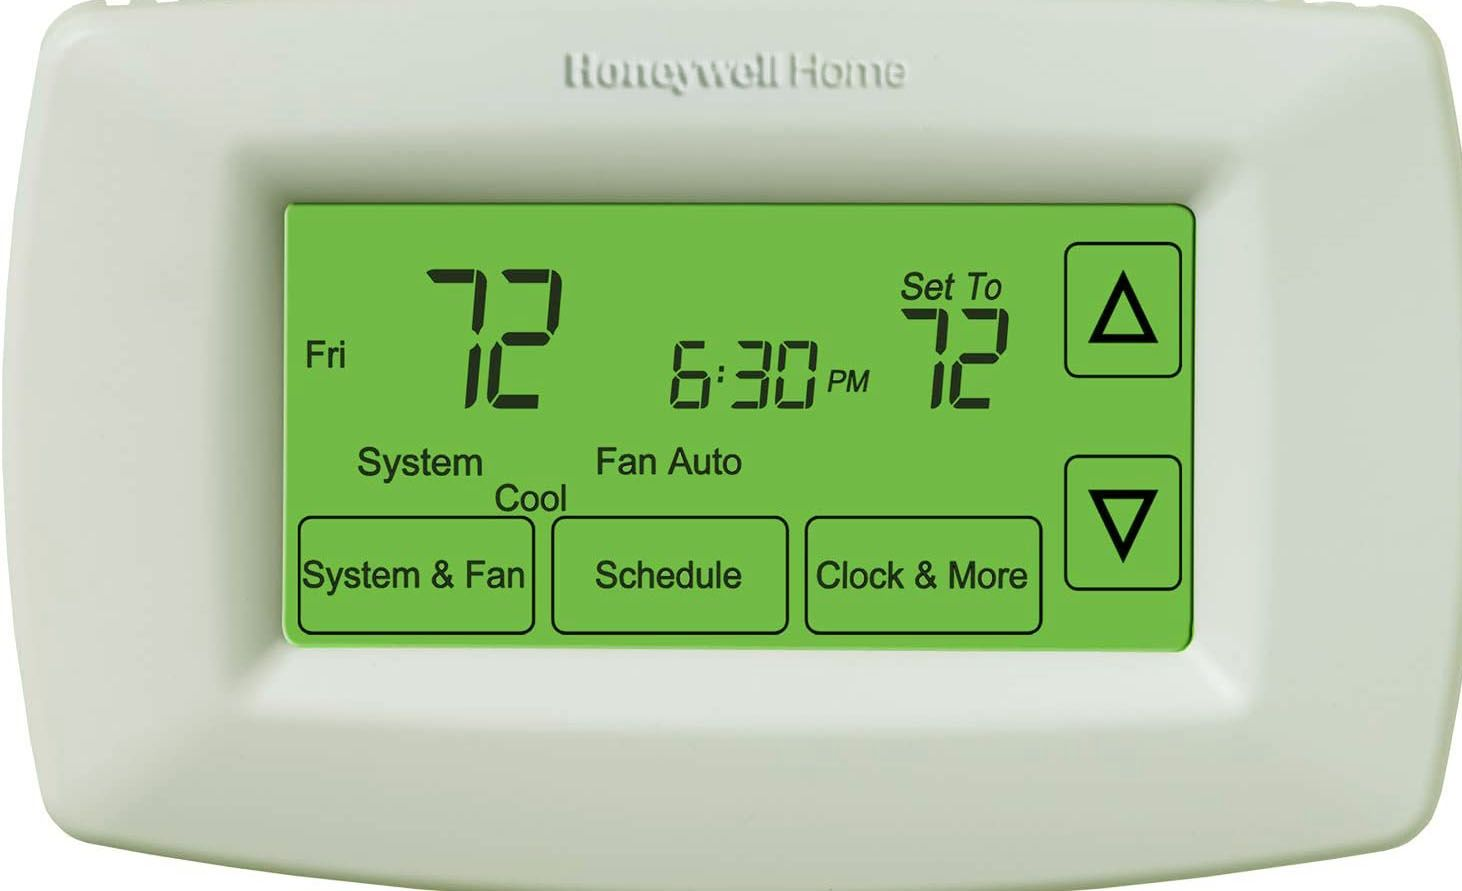 Honeywell Thermostat RTH7600D 7Day Programmable in 2020